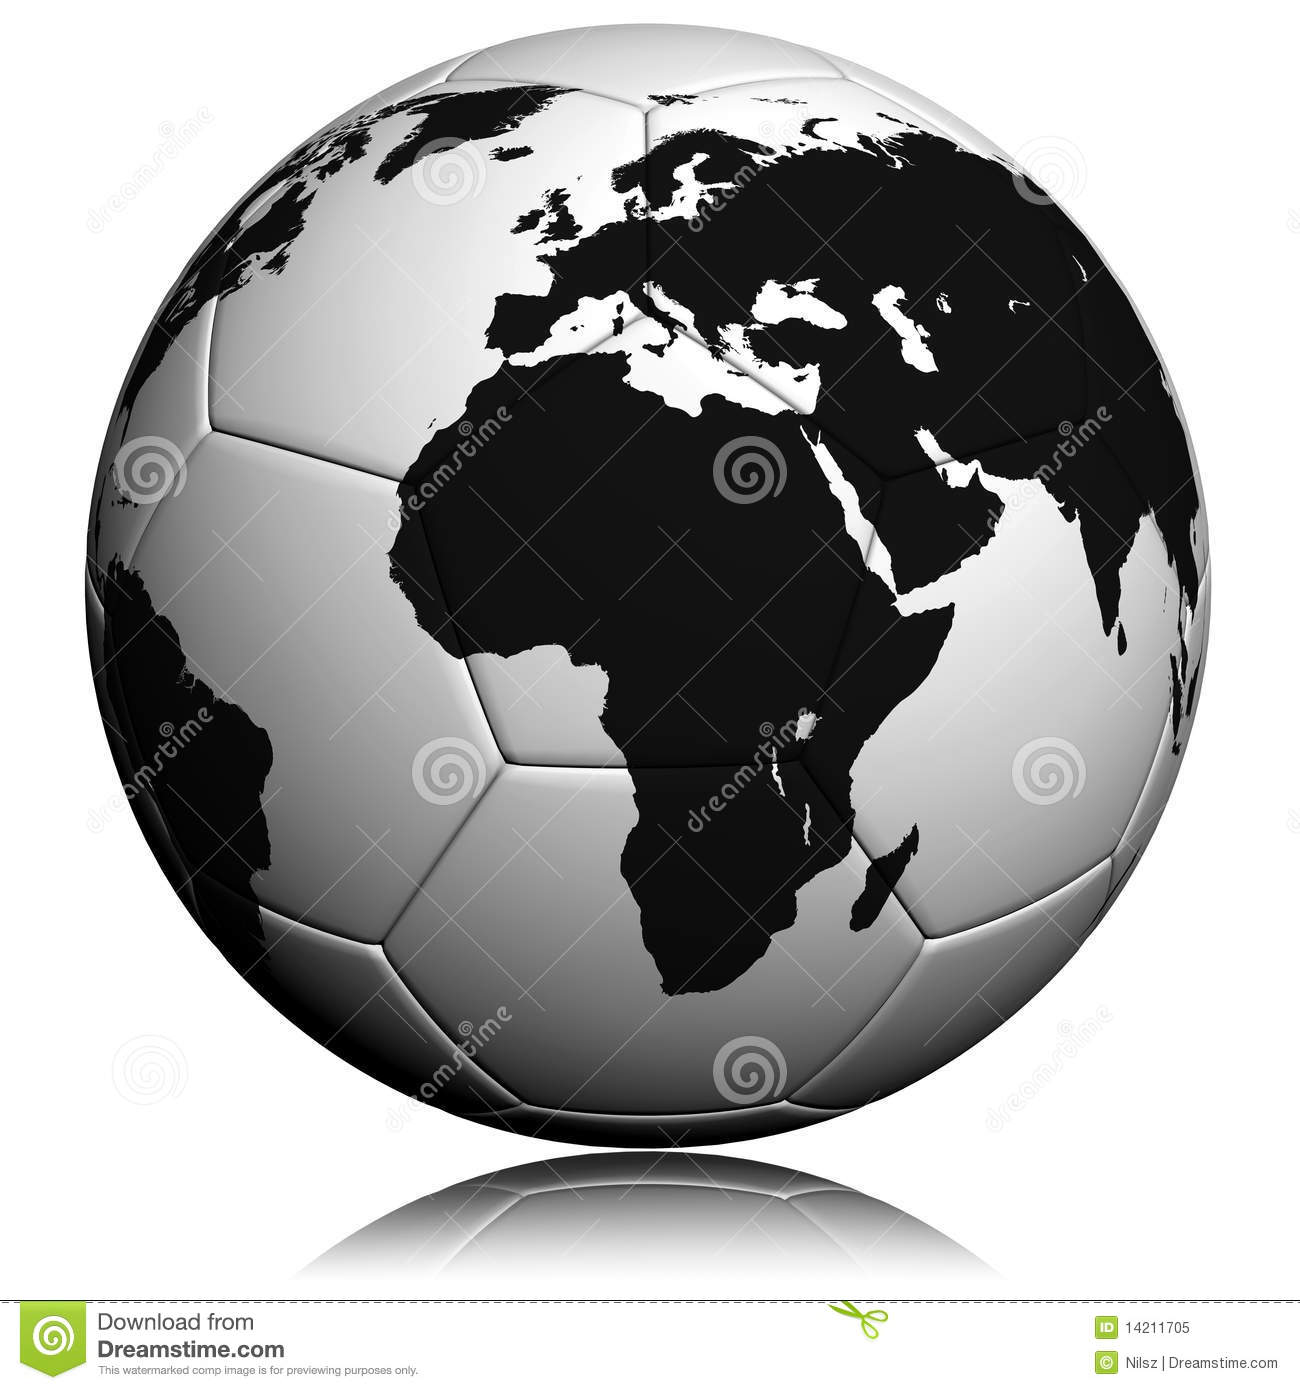 Soccerball with worldmap stock illustration illustration of team soccerball with worldmap gumiabroncs Images